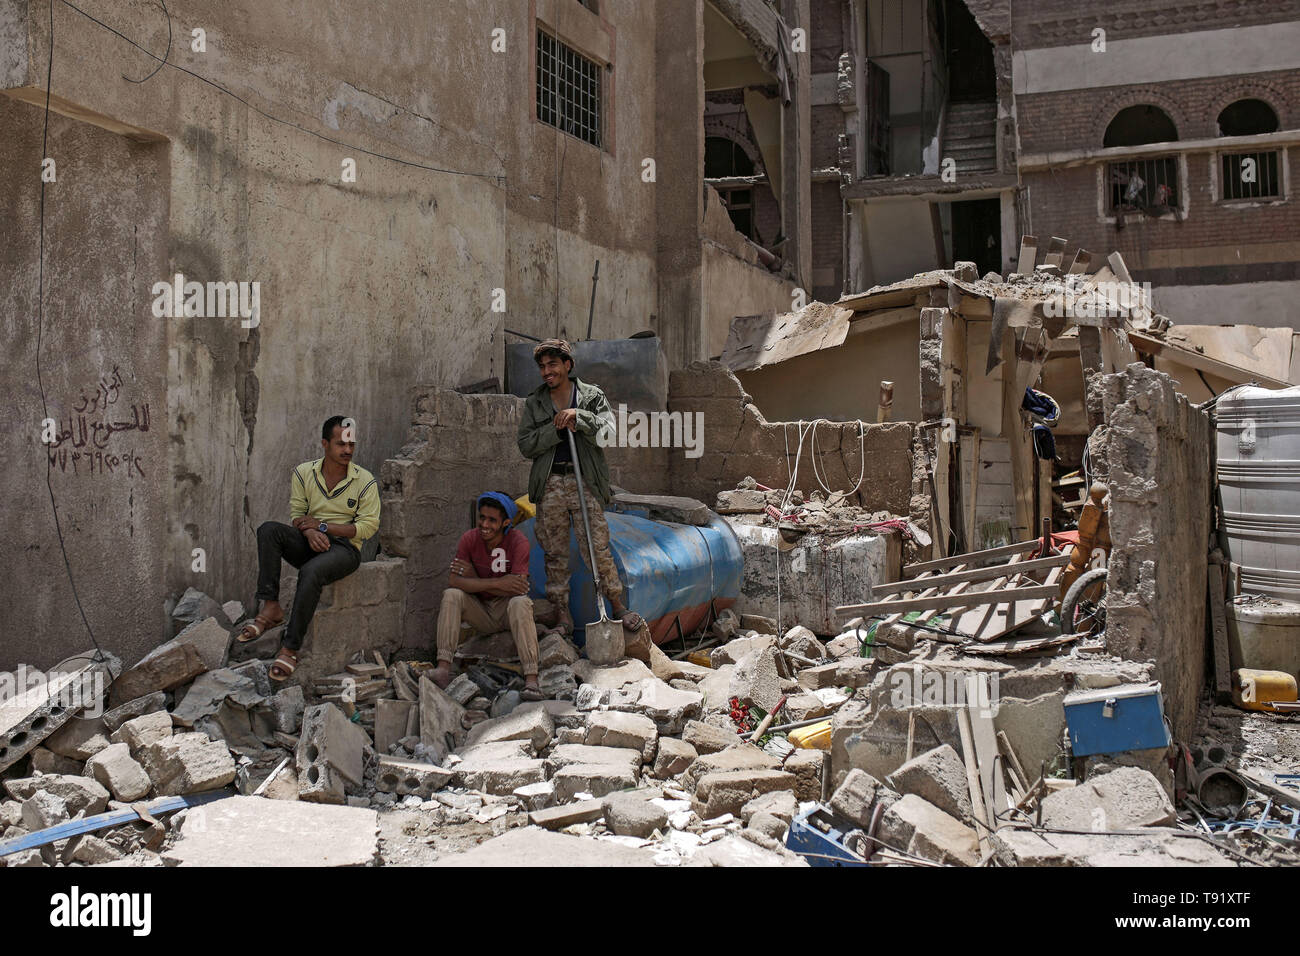 Sanaa, Yemen. 16th May, 2019. Yemenis inspect the site of a Saudi-led coalition airstrike. According to a local health official linked to the Houthi rebels the airstrike killed at least six Civilians. The coalition carried out several airstrikes on the Houthi-held capital Sanaa on Thursday, after the Iranian-aligned movement claimed responsibility for drone attacks on Saudi oil installations. Credit: Hani Al-Ansi/dpa/Alamy Live News - Stock Image